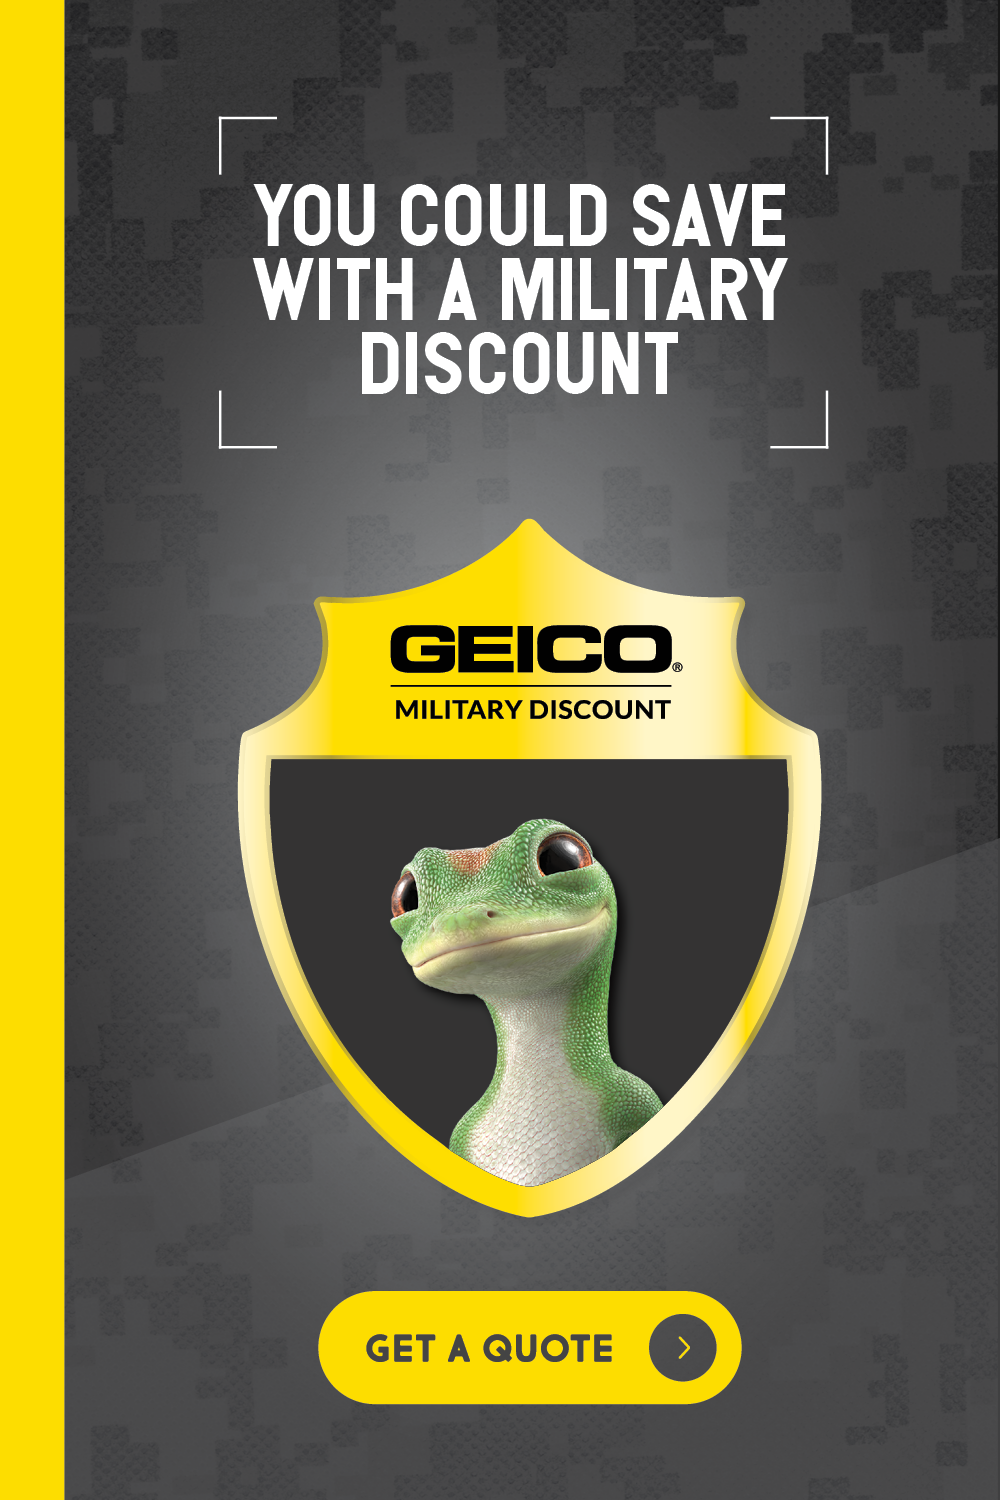 GEICO MILITARY in 2020 Military discounts, Military